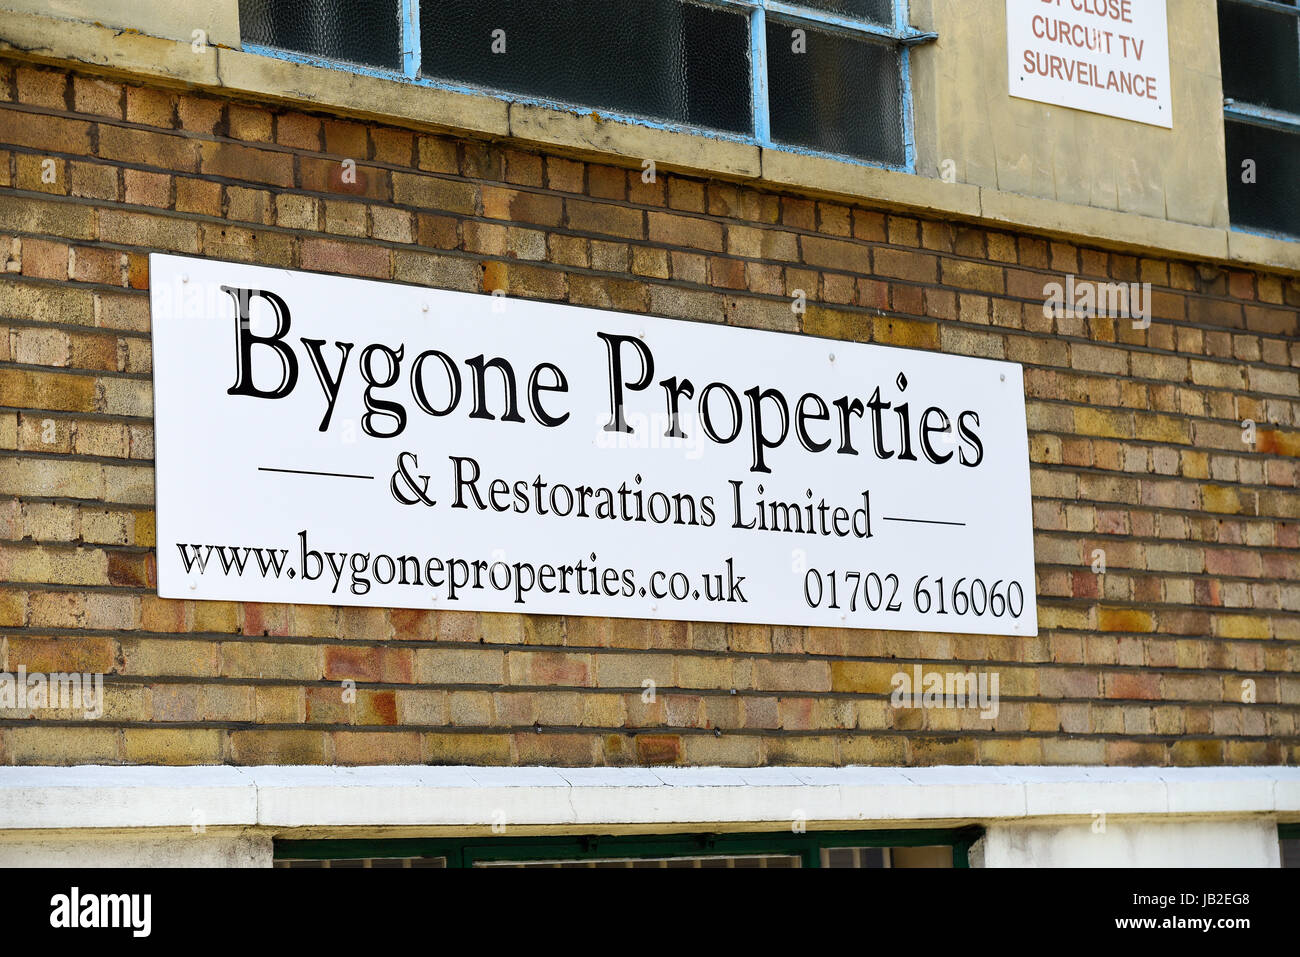 Bygone Properties & Restorations Limited in Sutton Road, Southend on Sea, Essex, UK. Space for copy Stock Photo